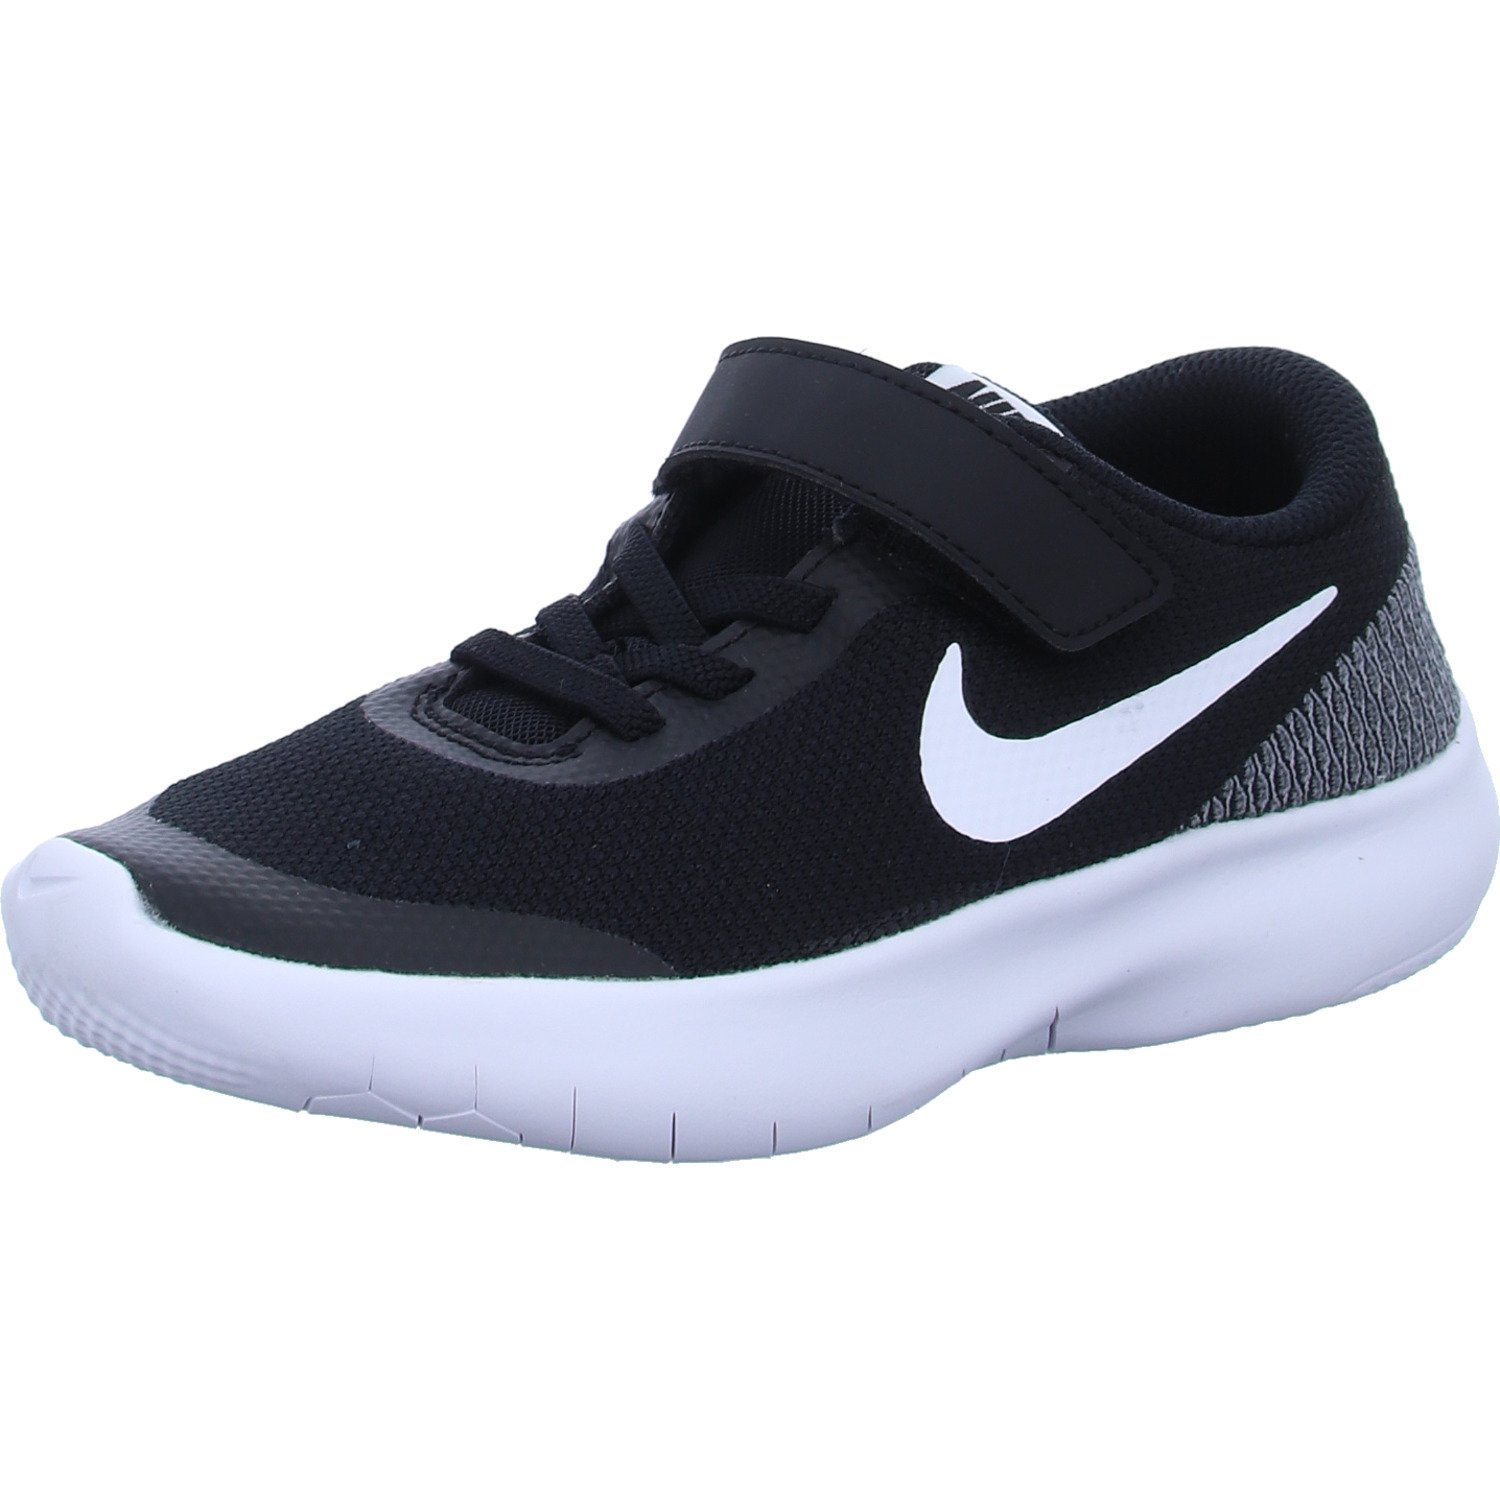 Nike Boy's Flex Experience RN 7 (PSV) Running Shoes (1 M US Little Kid, Black/White/White)